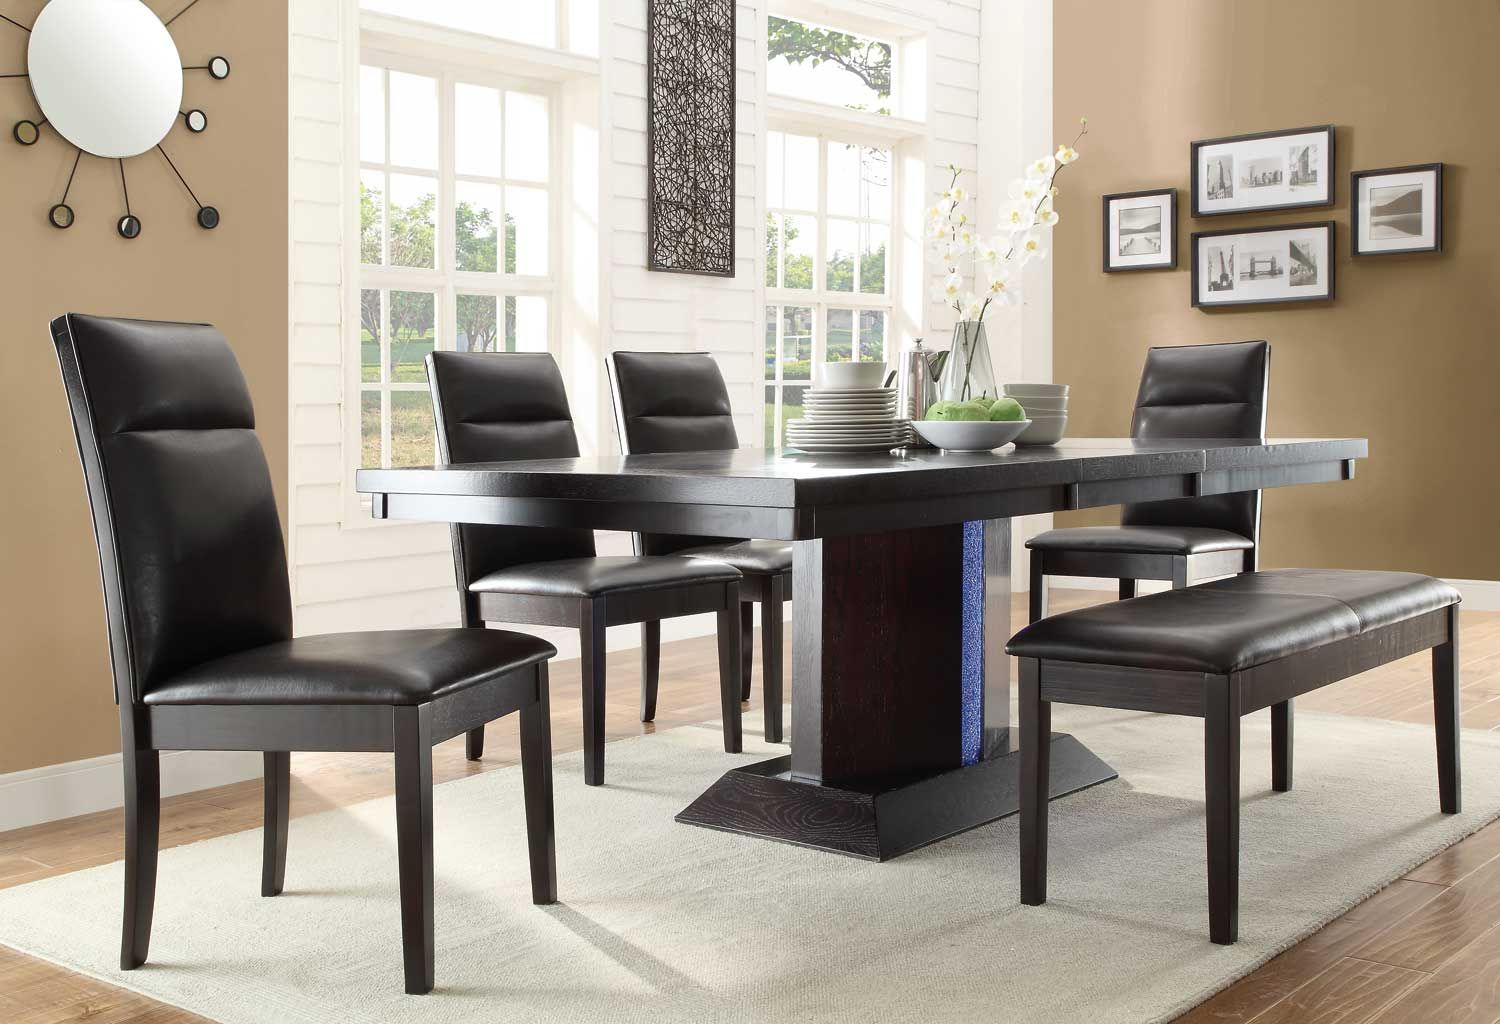 Homelegance Pulse Dining Set With Led Light  Espresso $145400 Adorable Espresso Dining Room Table Sets Decorating Inspiration